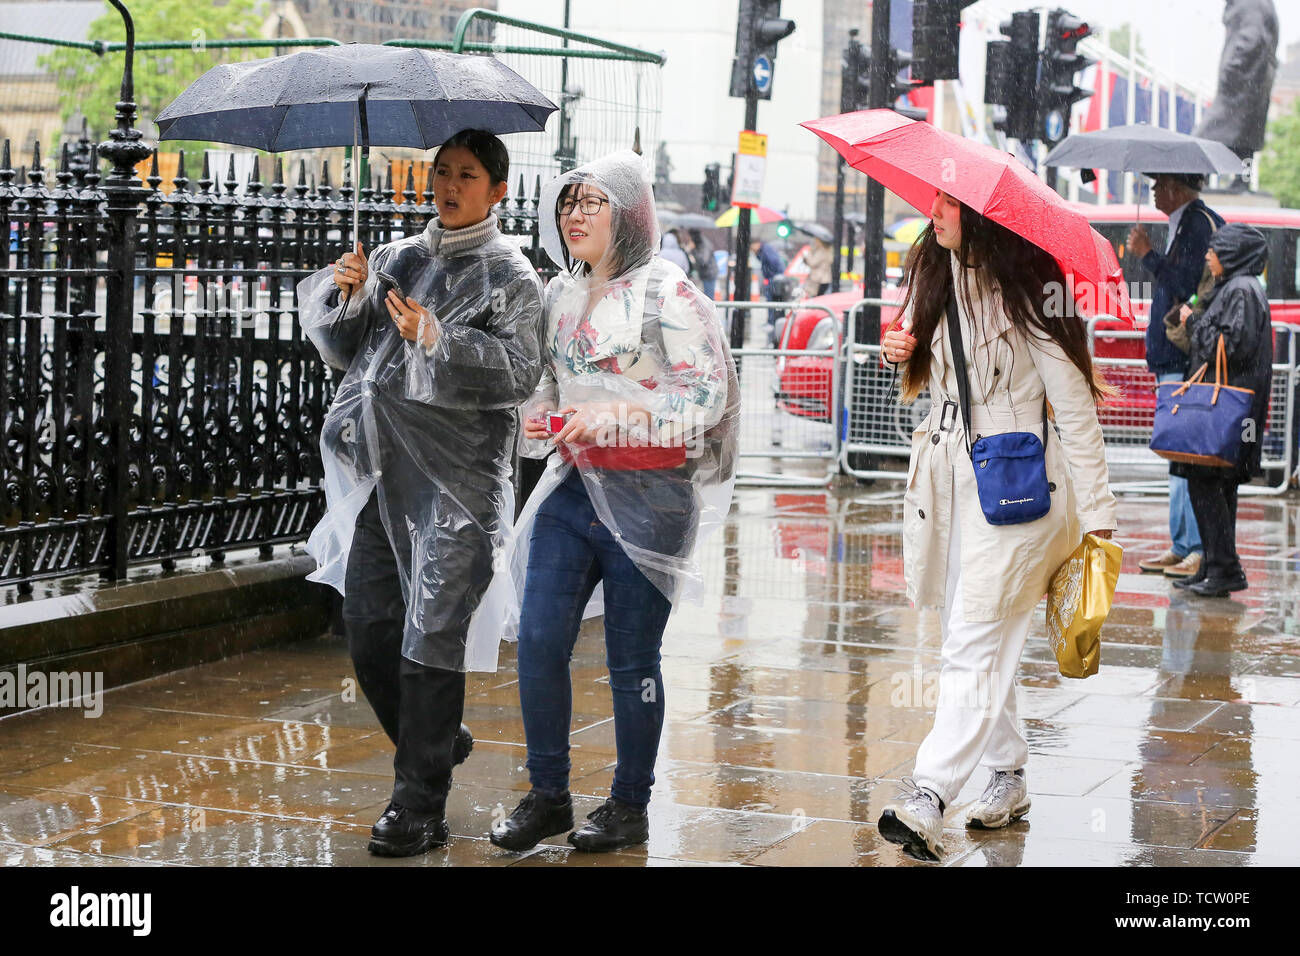 June 10, 2019 - London, UK, United Kingdom - Tourists shelter from the rain beneath umbrellas and wearing rain ponchos as rainfalls in the capital. .The Met Office has issued an amber warning for more rain, covering London and parts of southeast England for this week. (Credit Image: © Dinendra Haria/SOPA Images via ZUMA Wire) - Stock Image